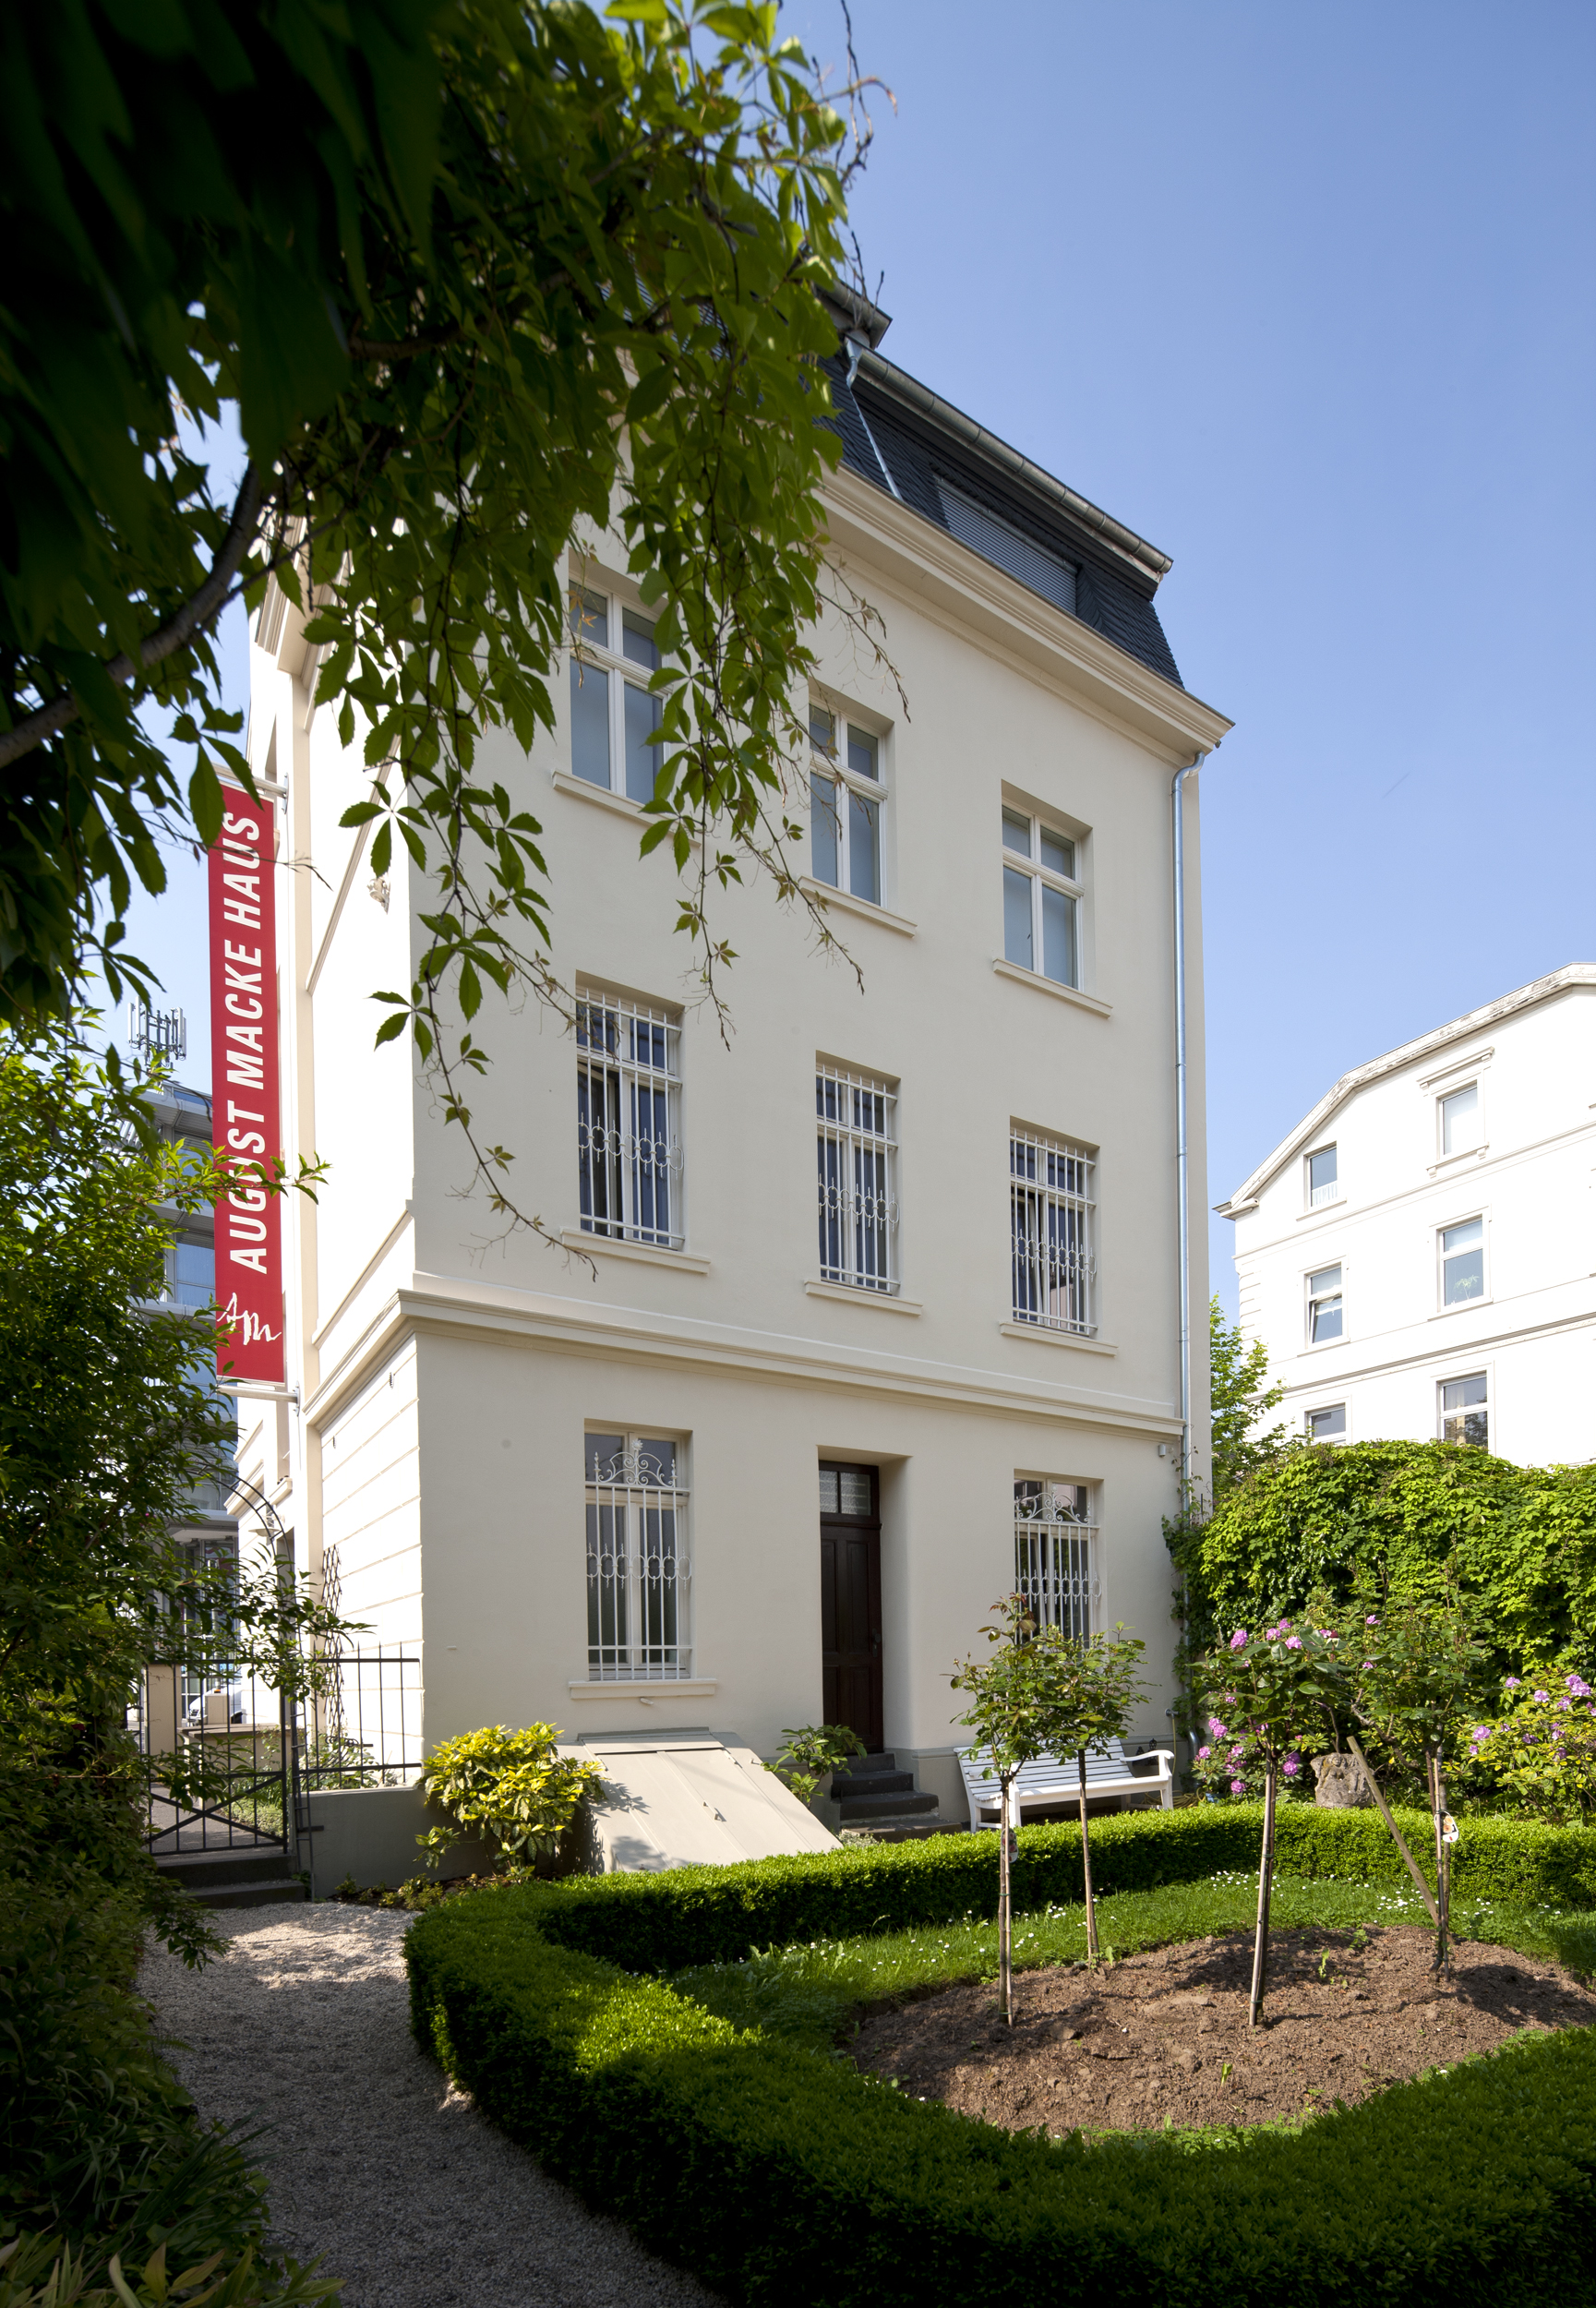 August Macke Haus Bonn in Bonn